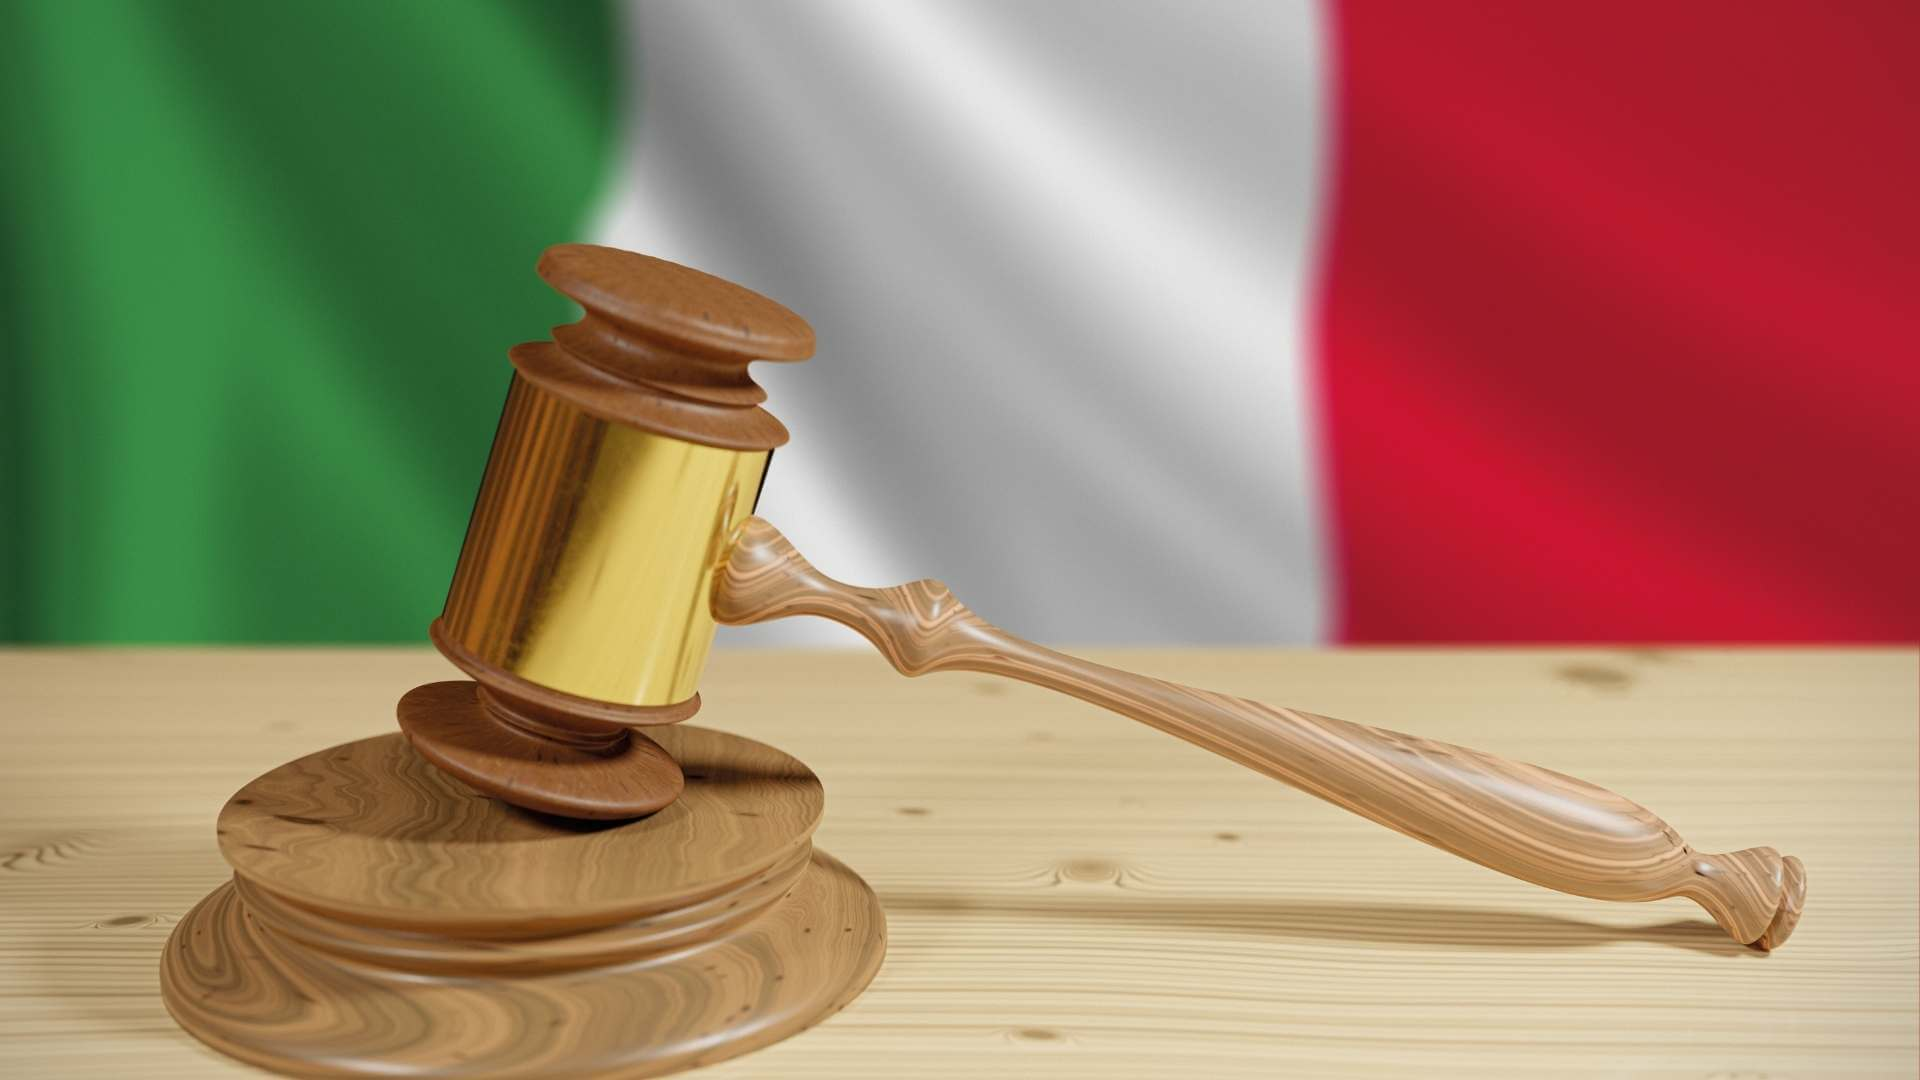 Italy Understanding the New E-Document Legislation Requirements